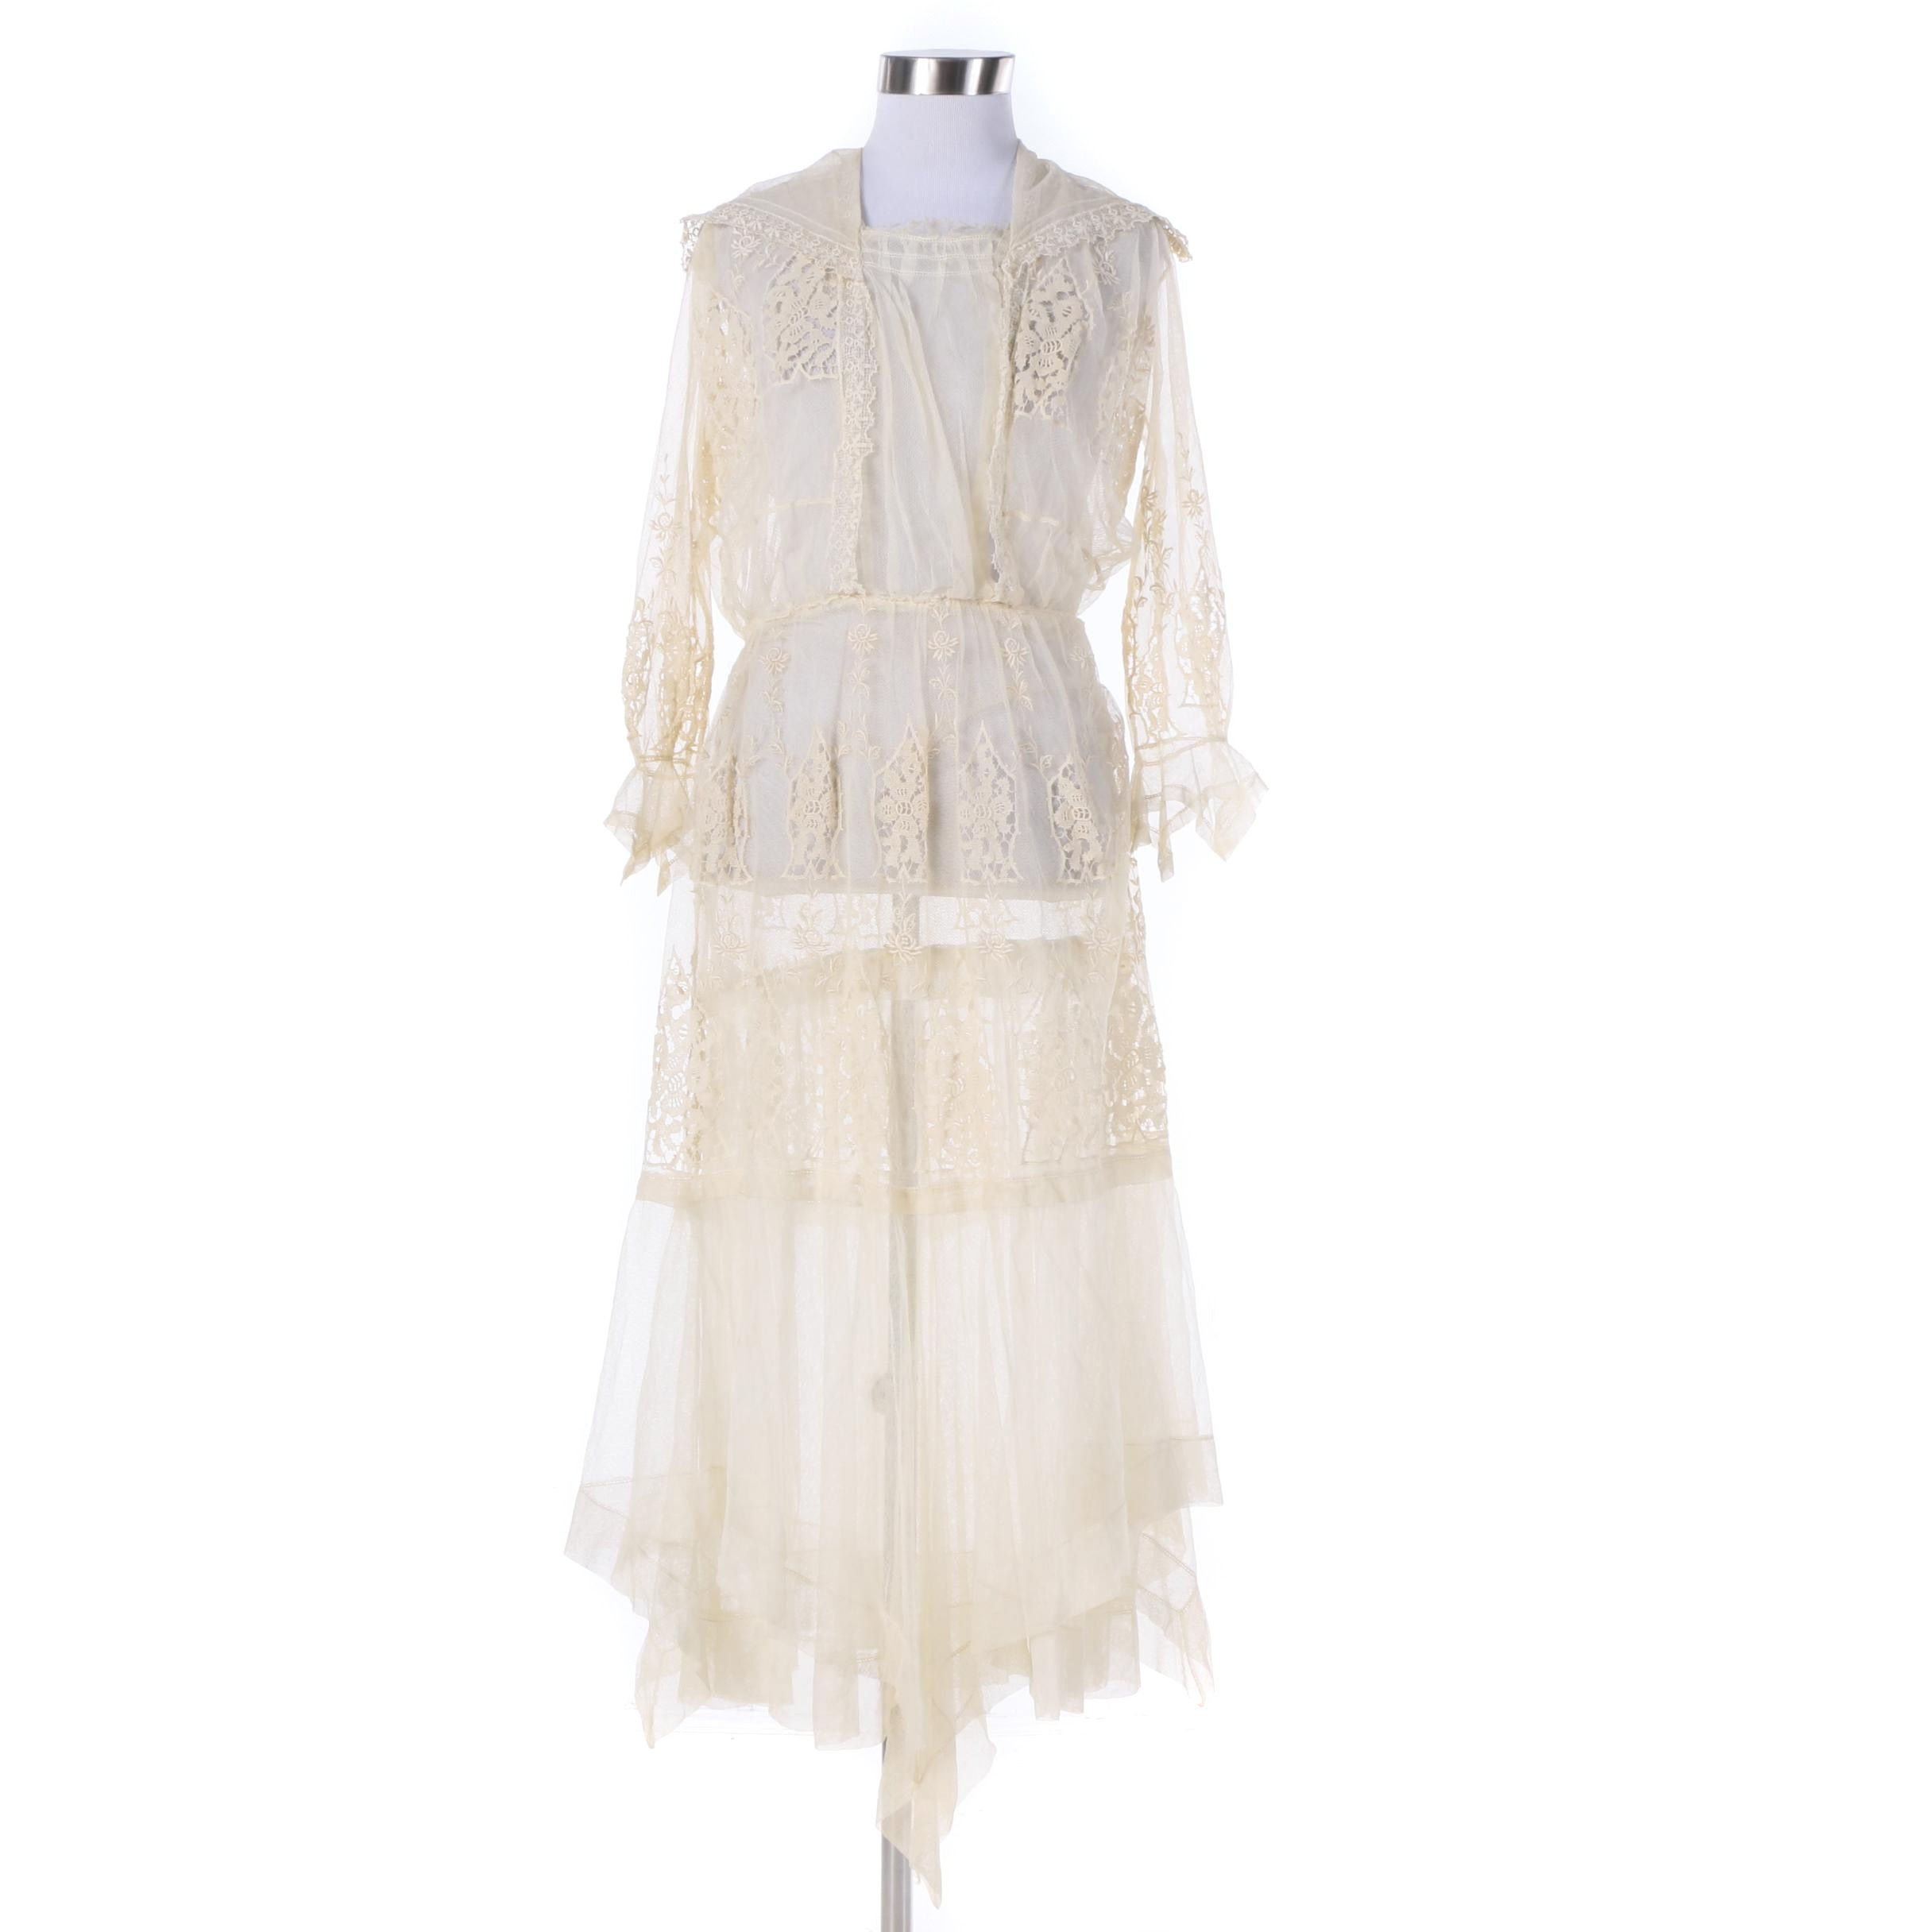 Circa 1920s Antique Lace and Mesh Dress